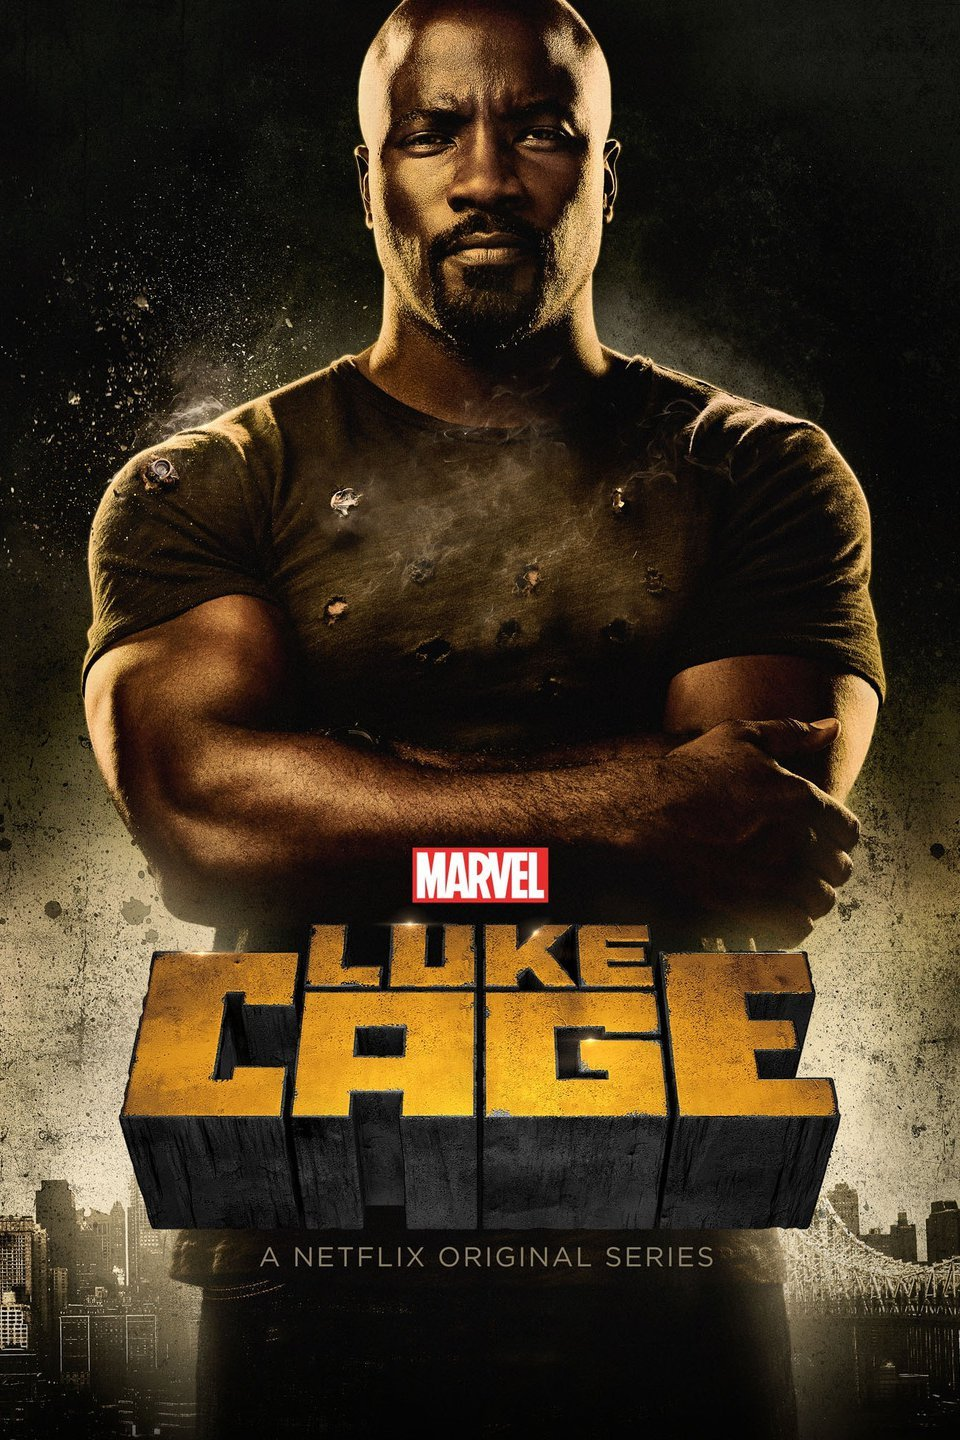 Luke Cage Season 1 Complete Download 720p WEBRip